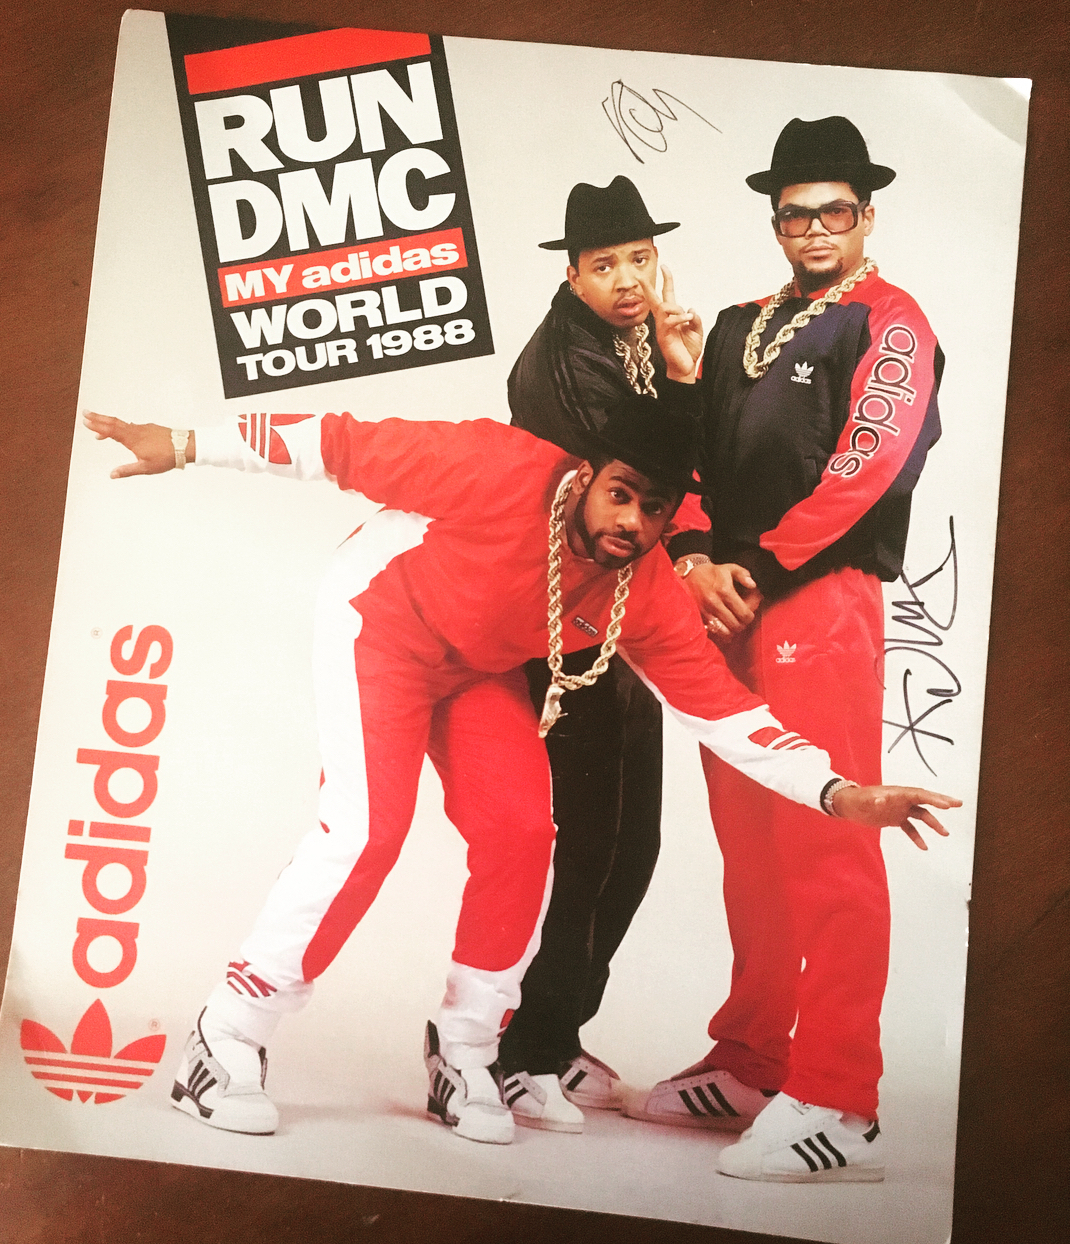 run dmc adidas world tour